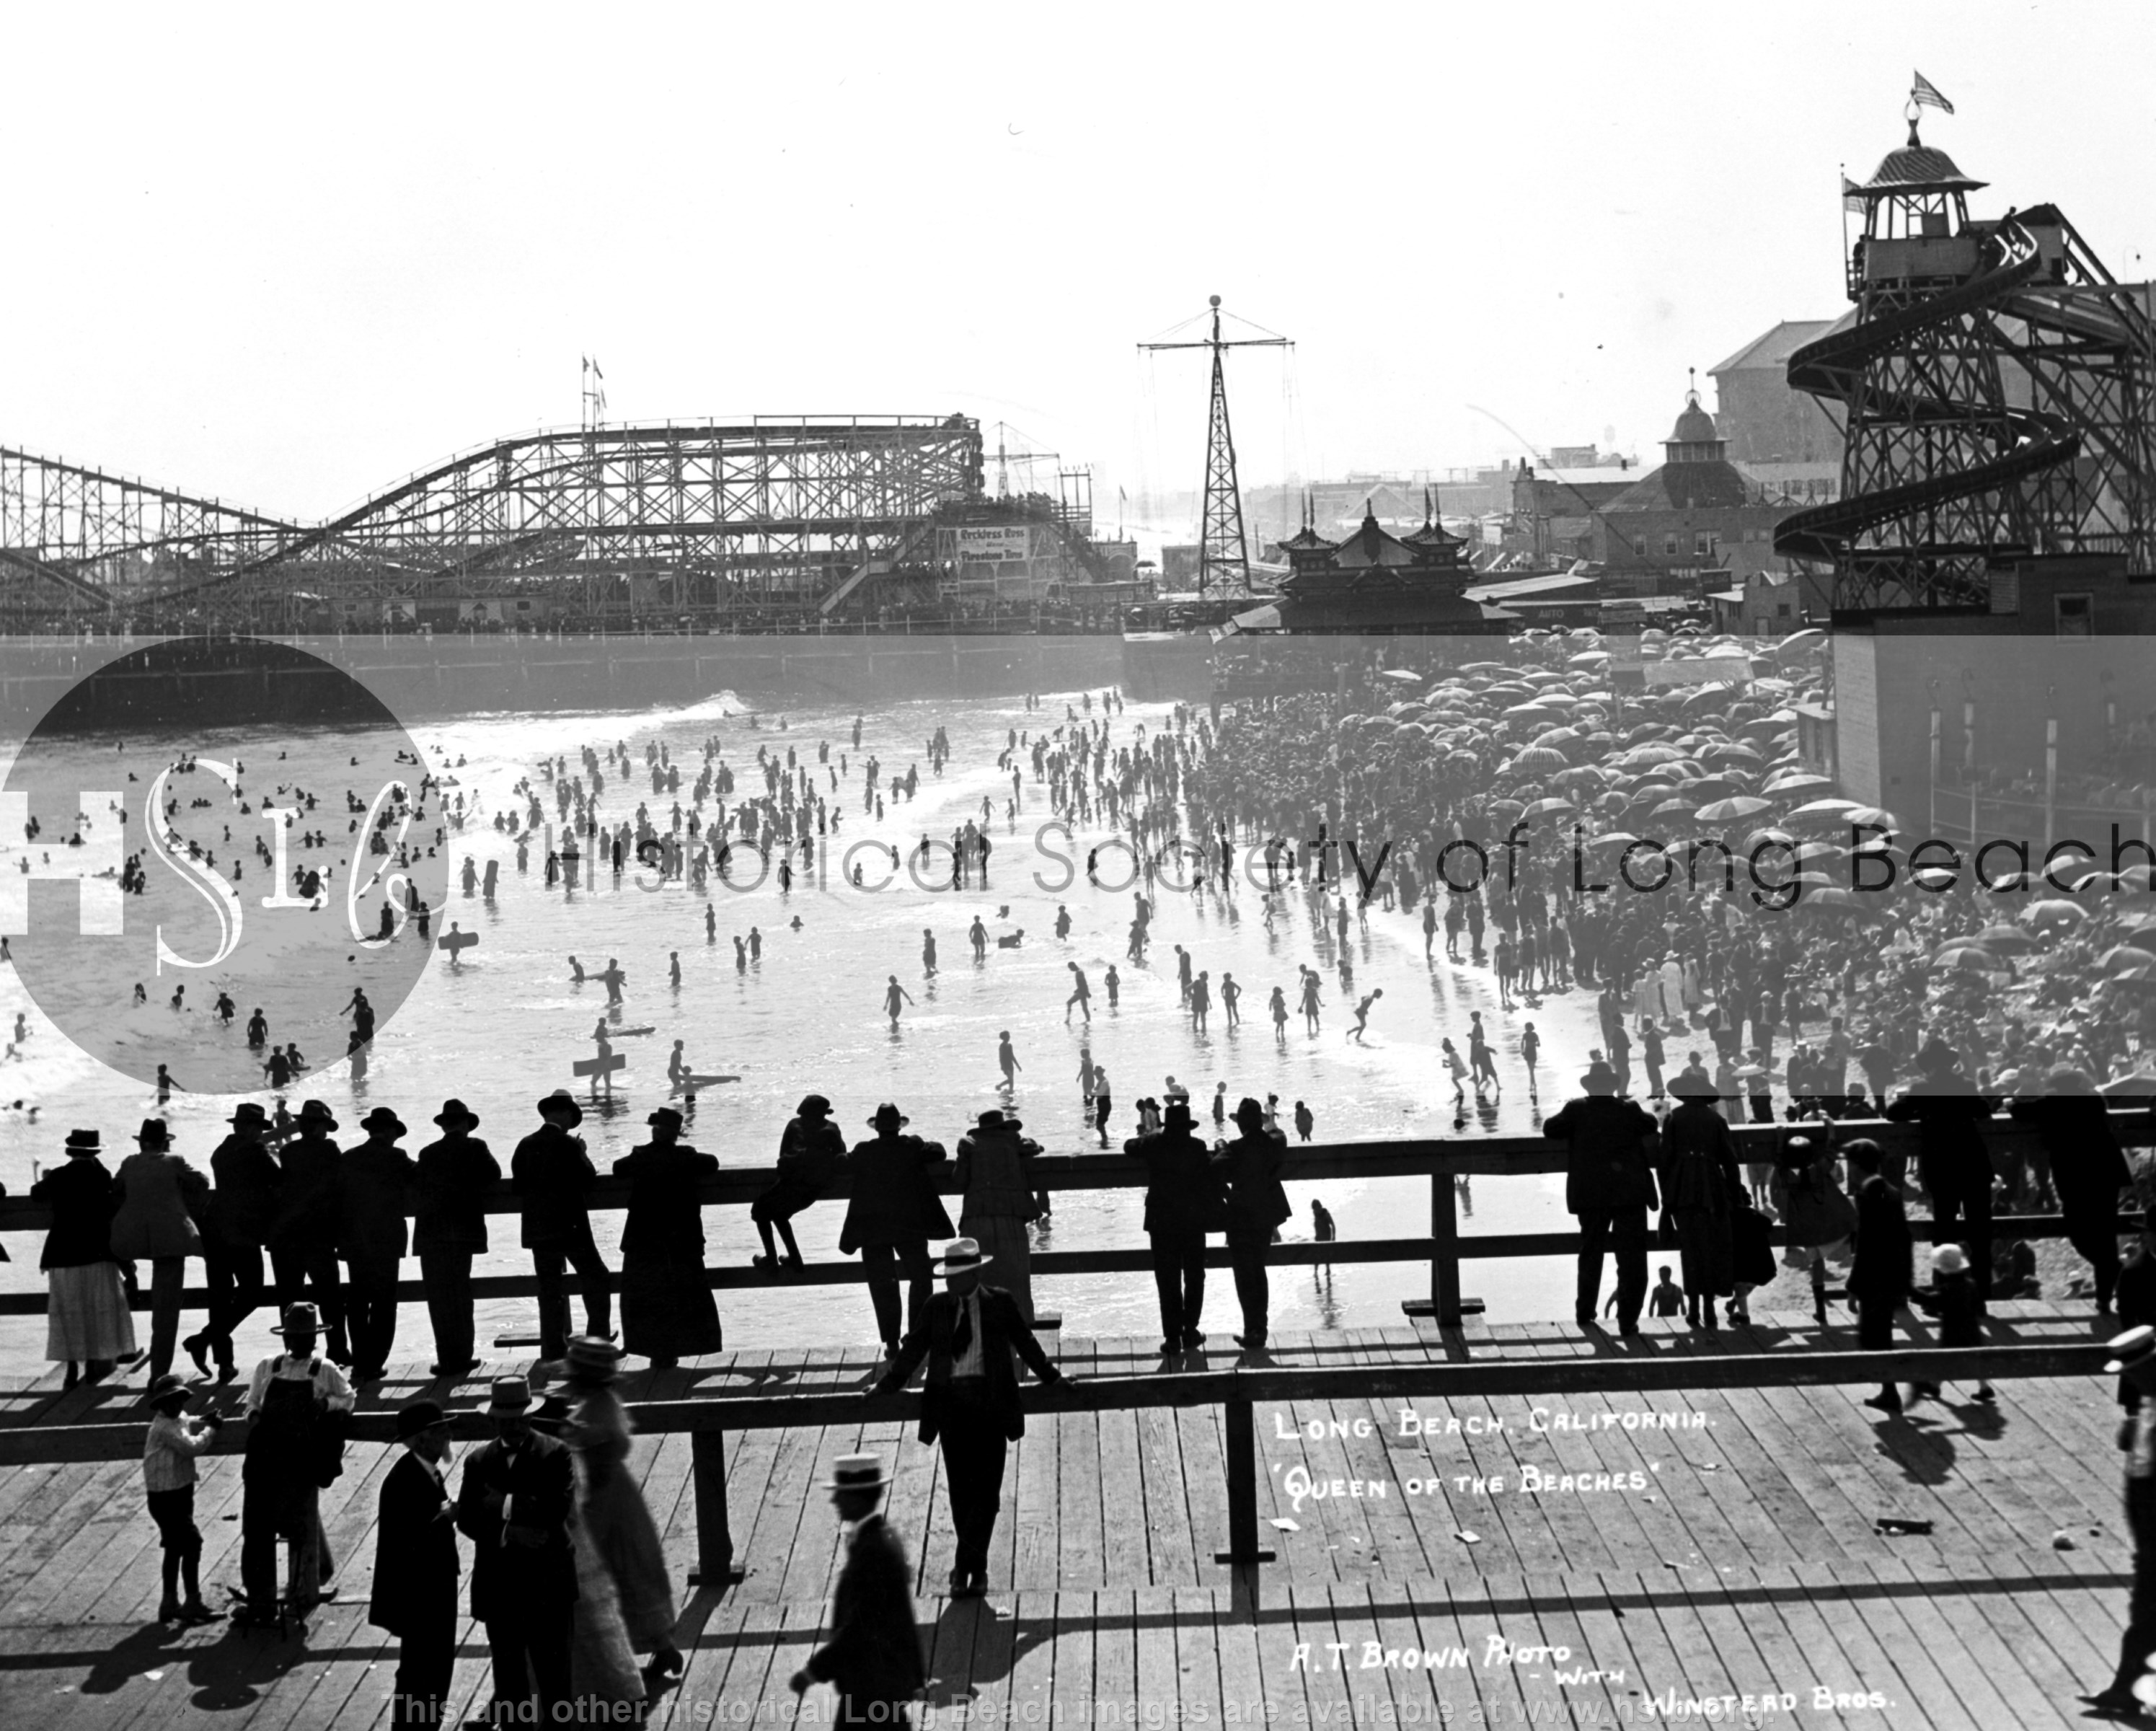 Pike from Pine Ave. Pier, 1915 vintage photograph